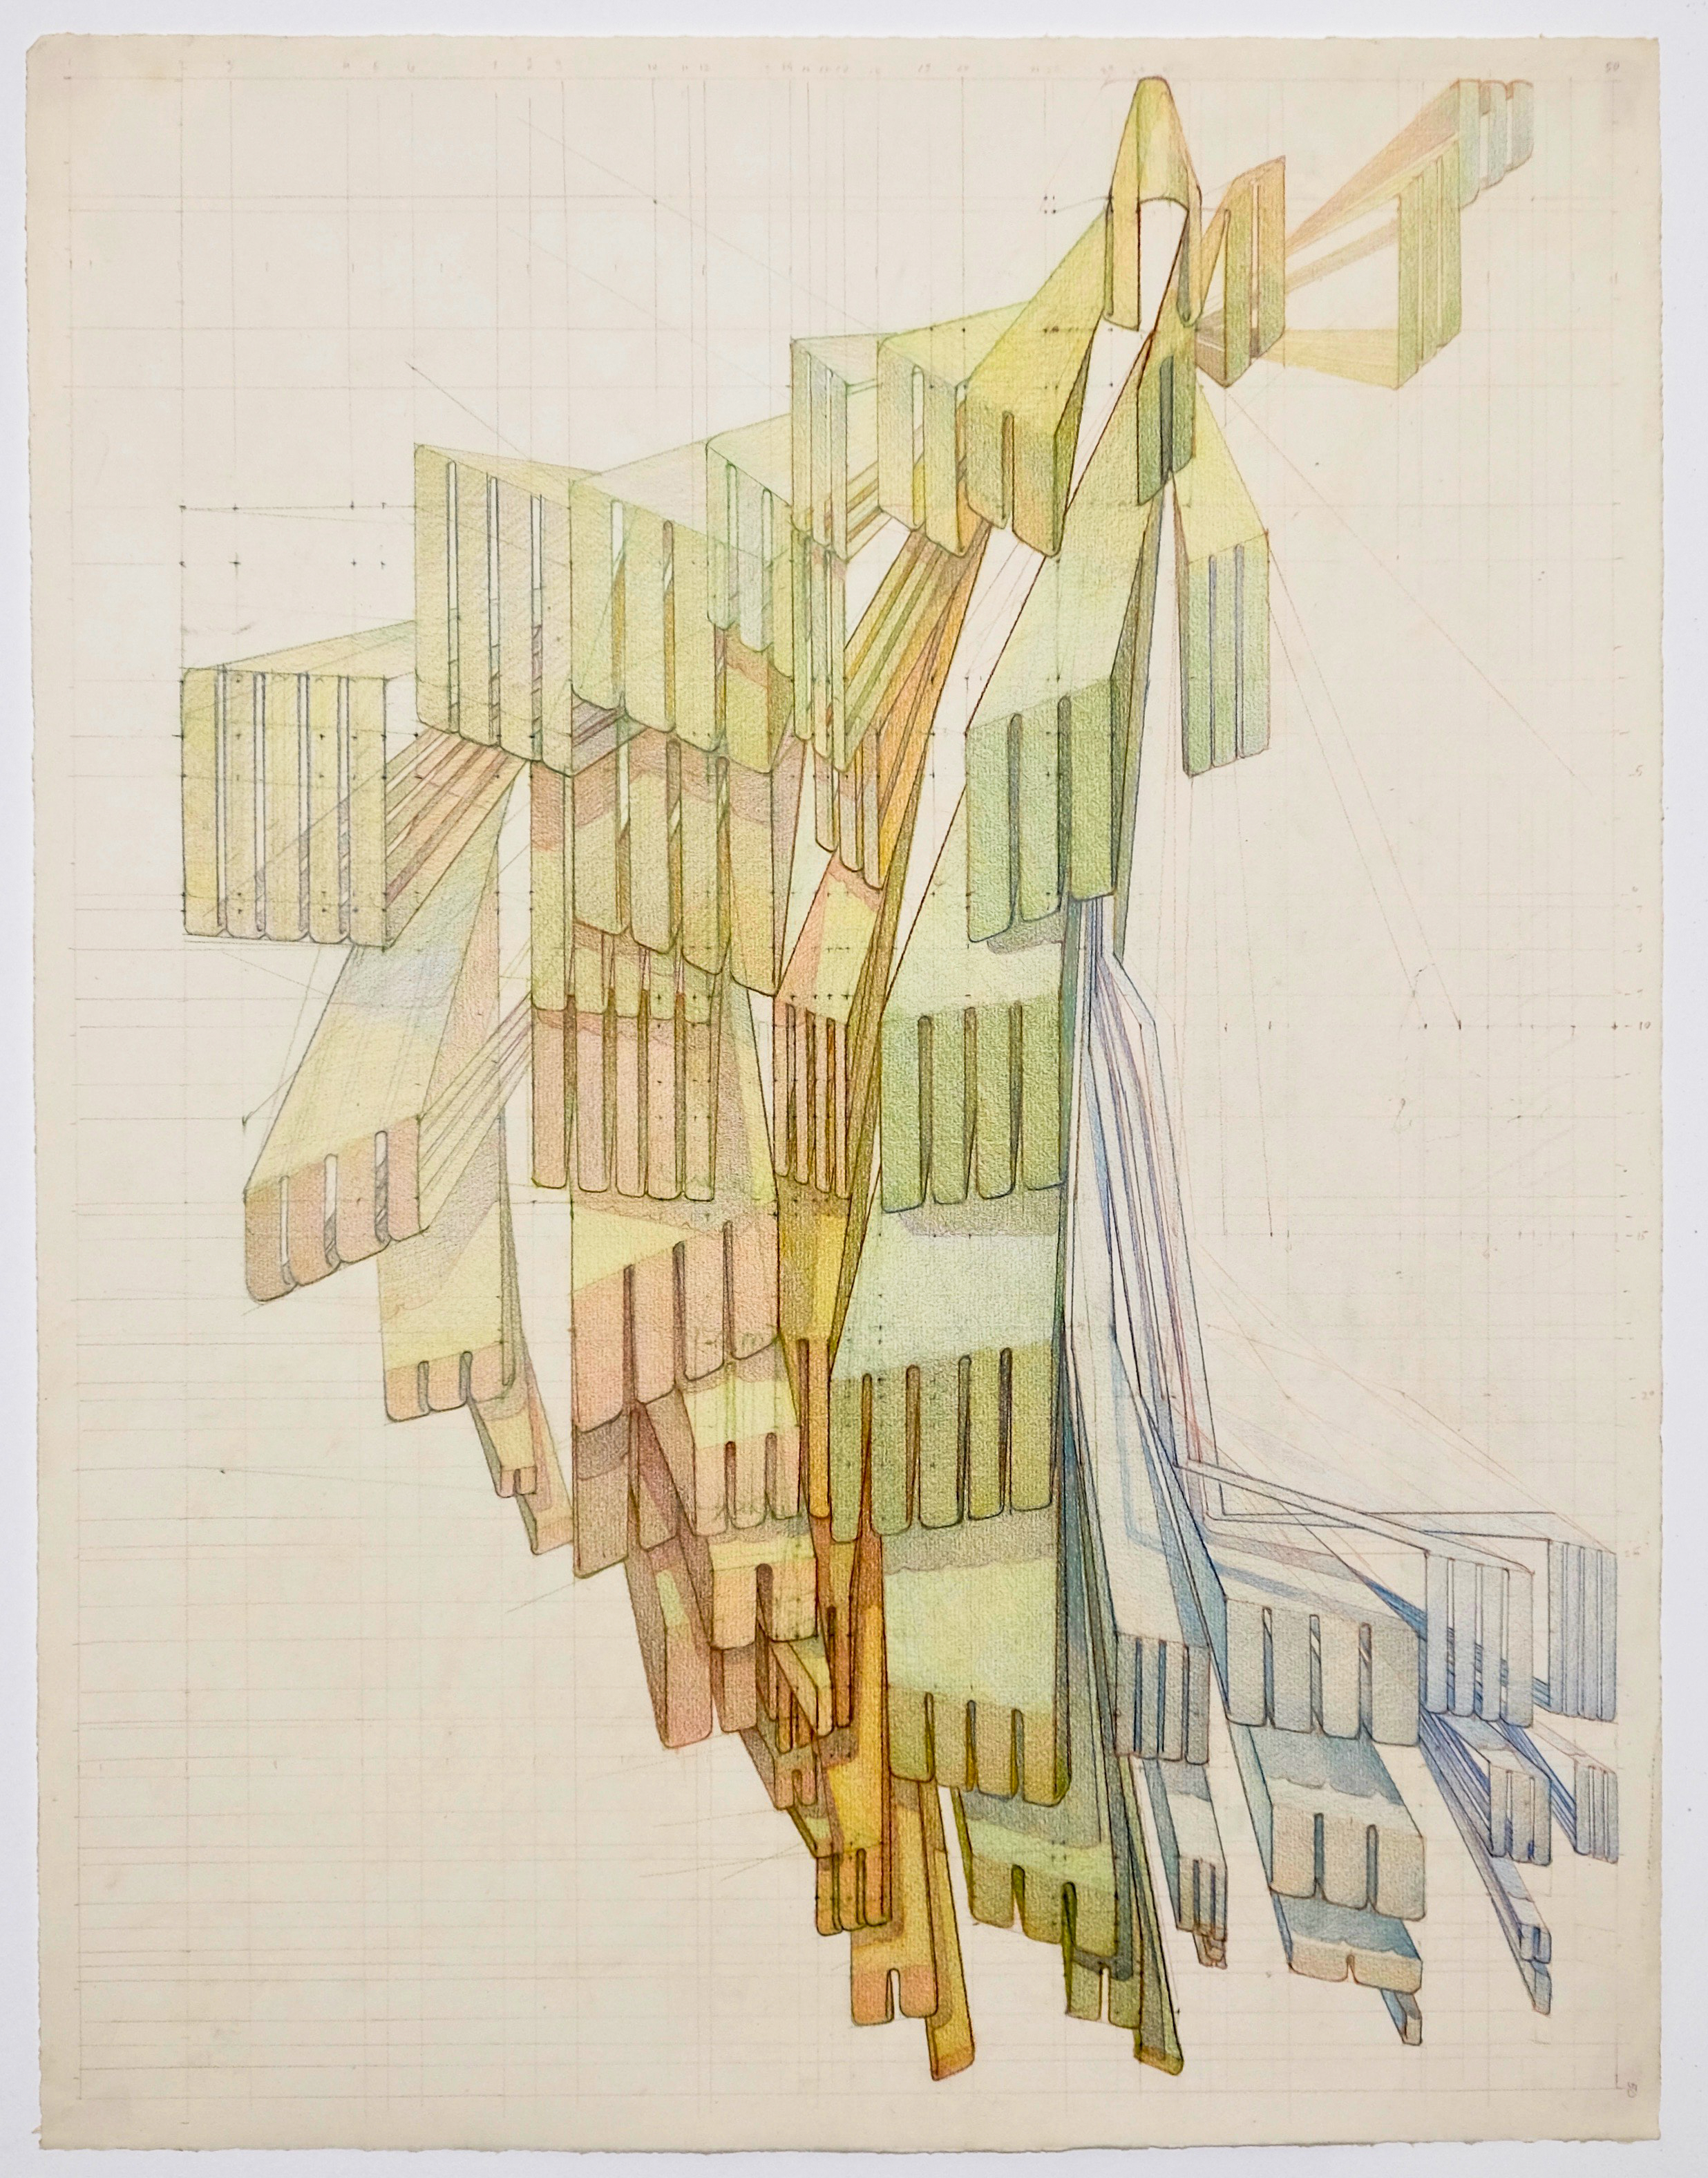 'Research Drawing 2', colored pencil on paper, 2018-2.jpg